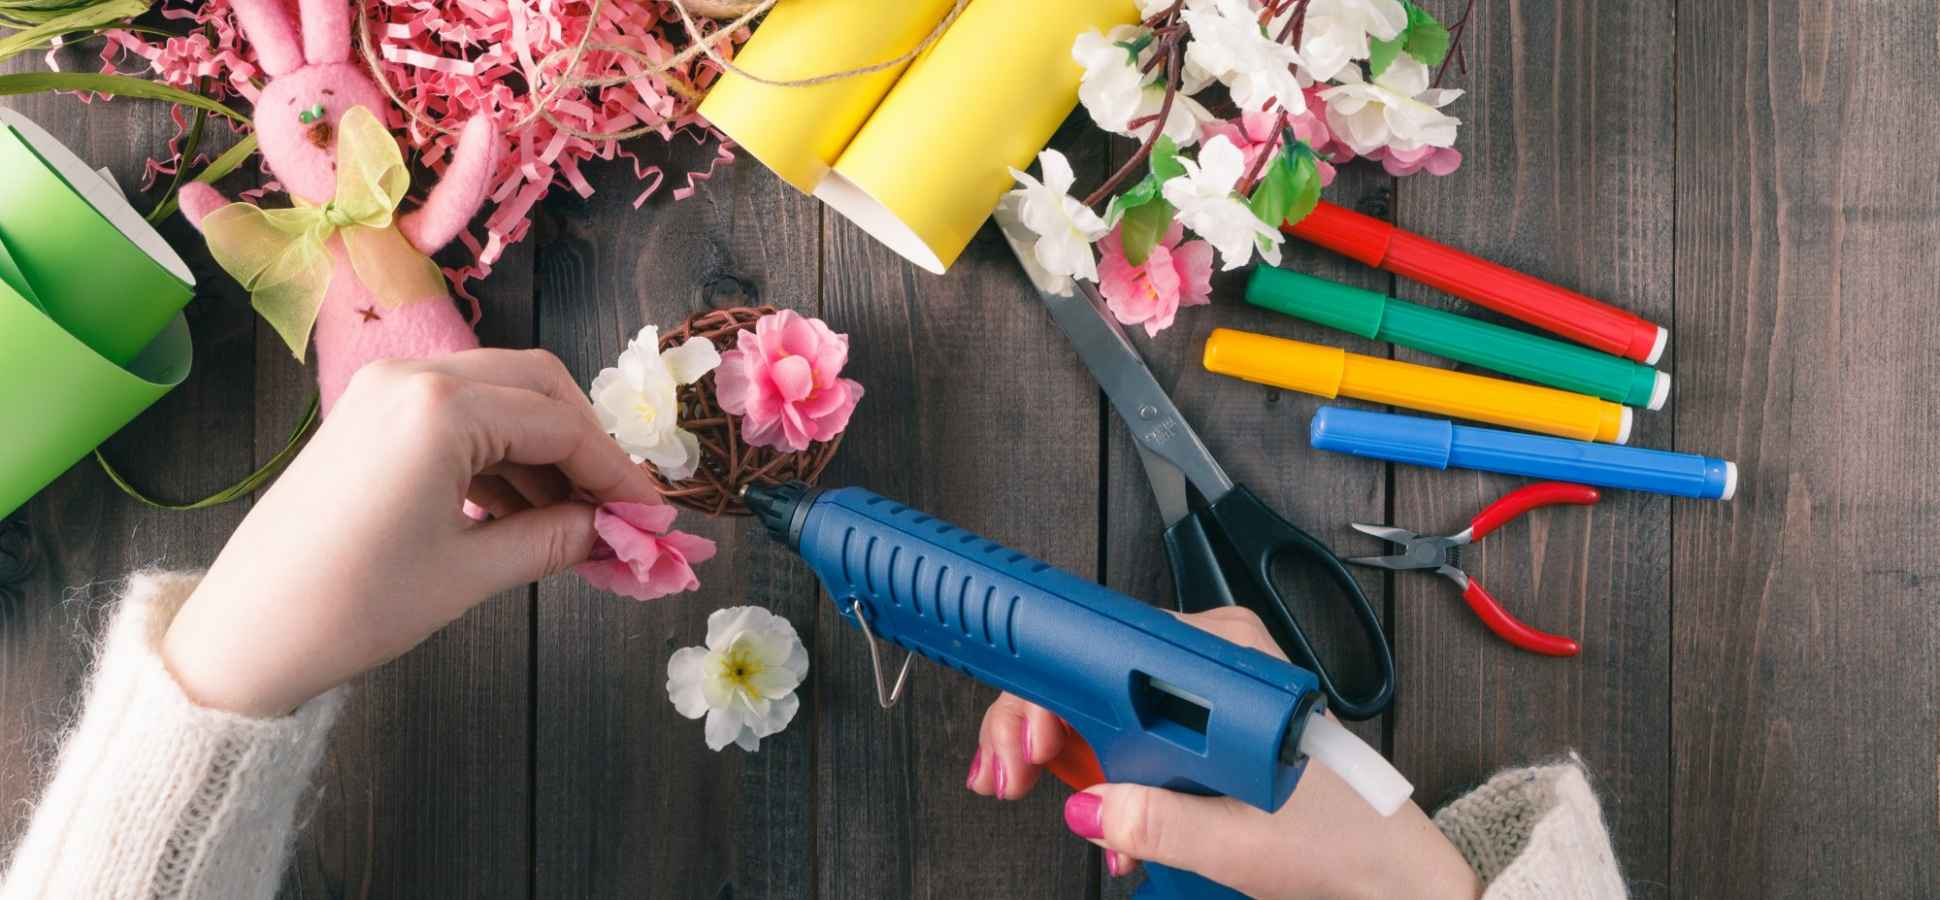 Why DIY Is a Space Begging to Be Disrupted